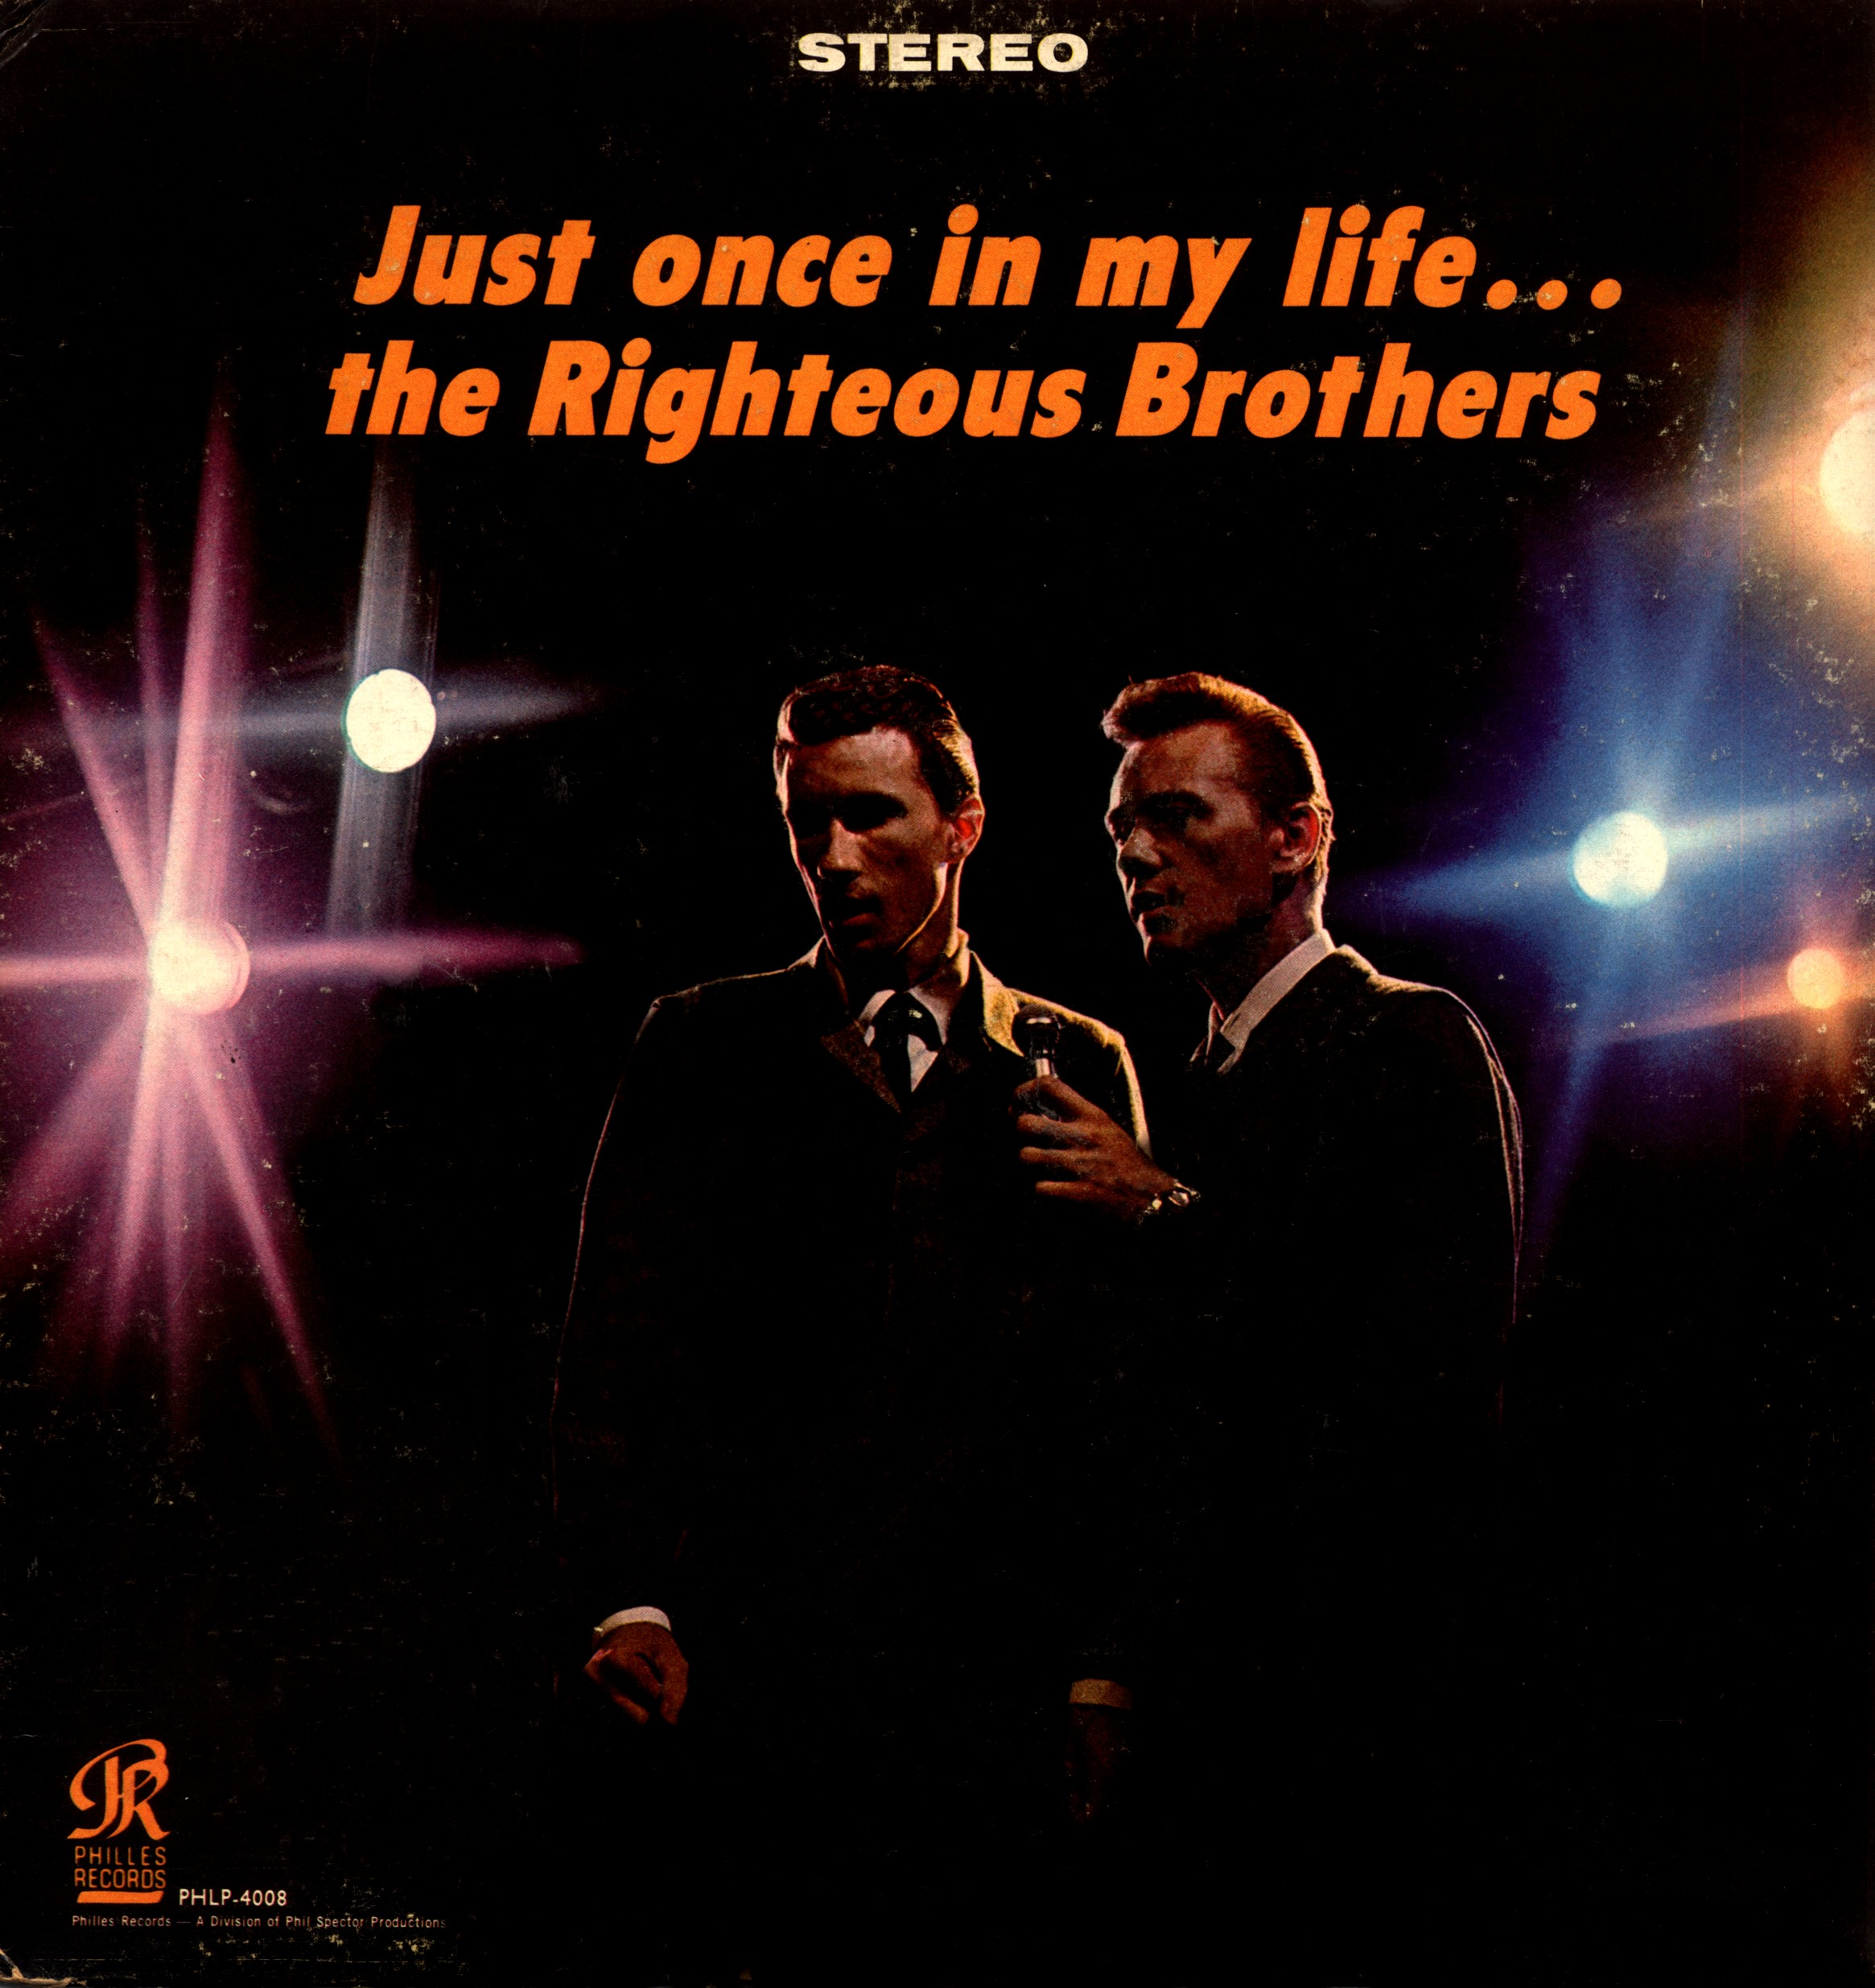 The Righteous Brothers Go Ahead And Cry